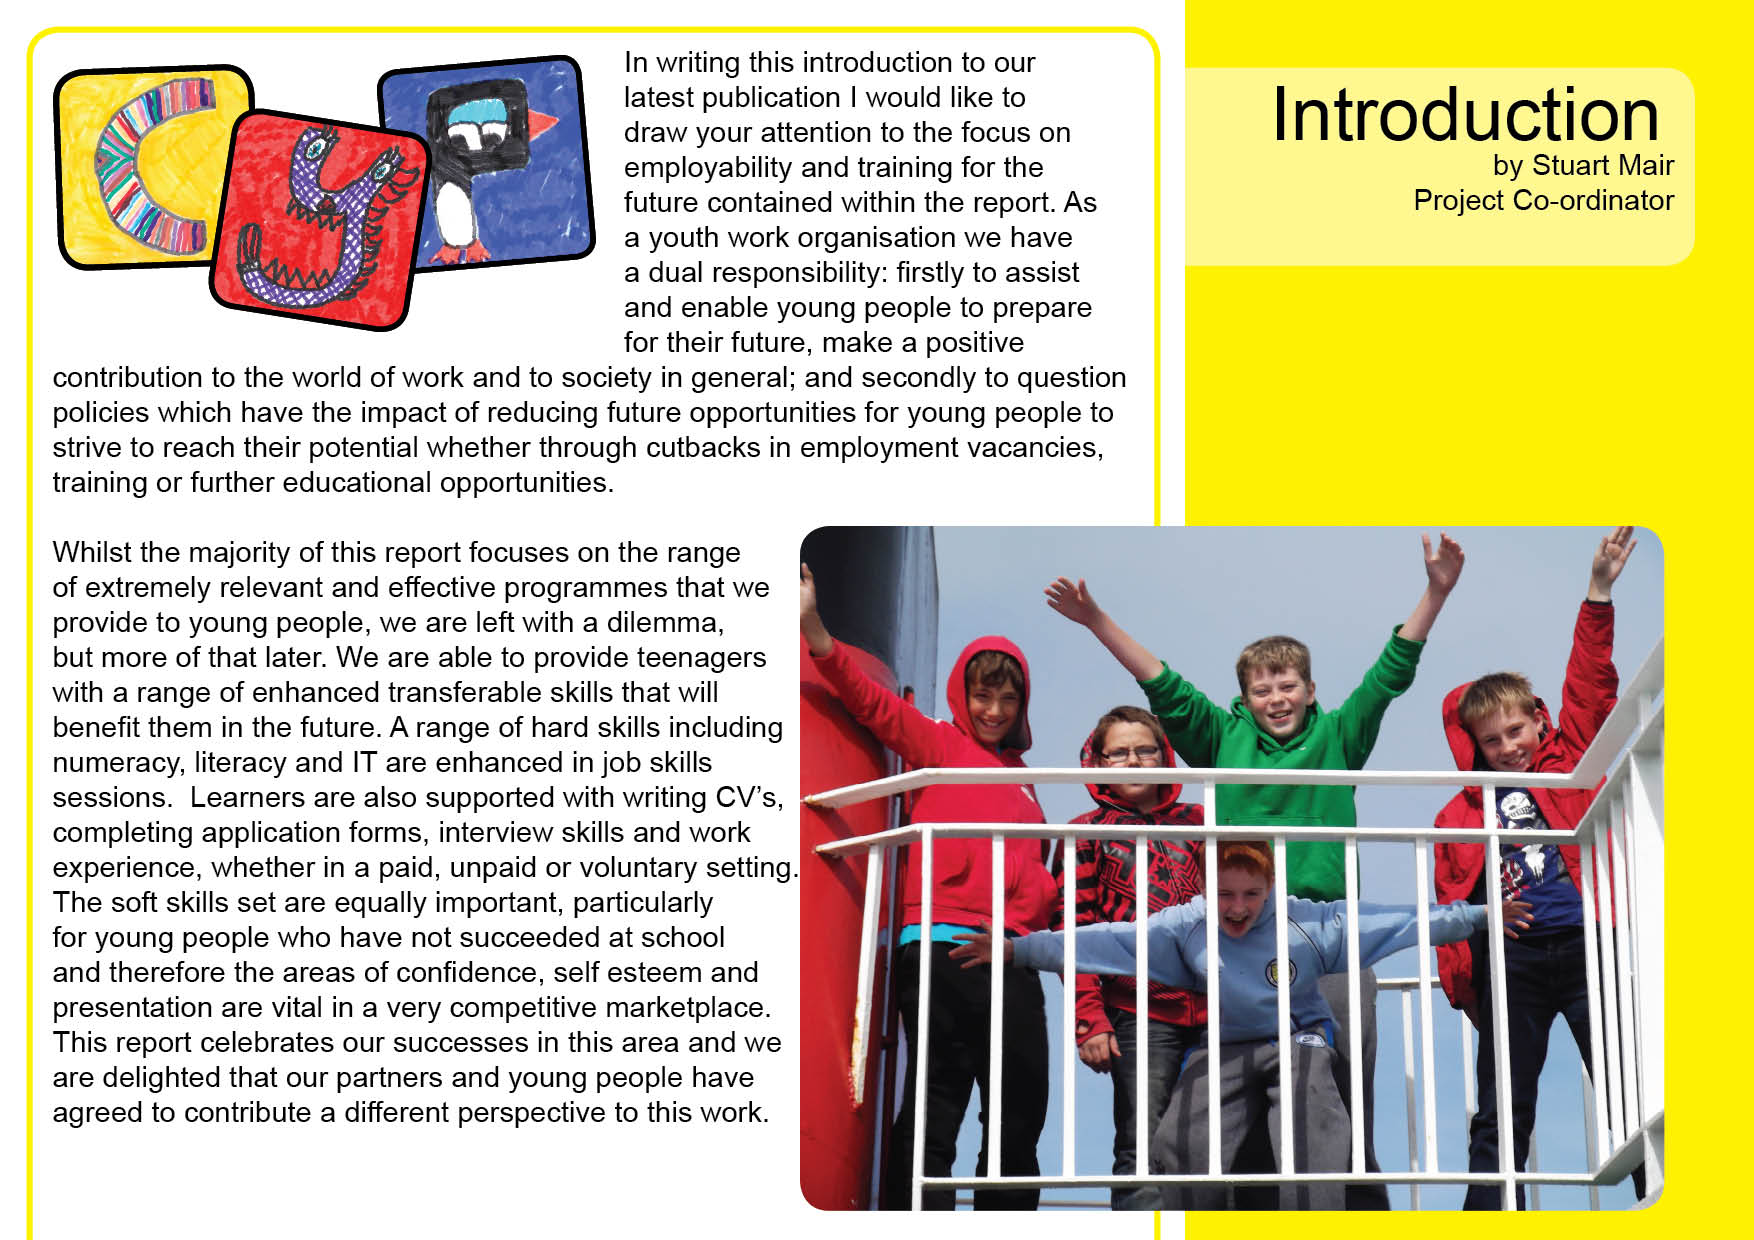 cyp newsletter edited single page high res2.jpg